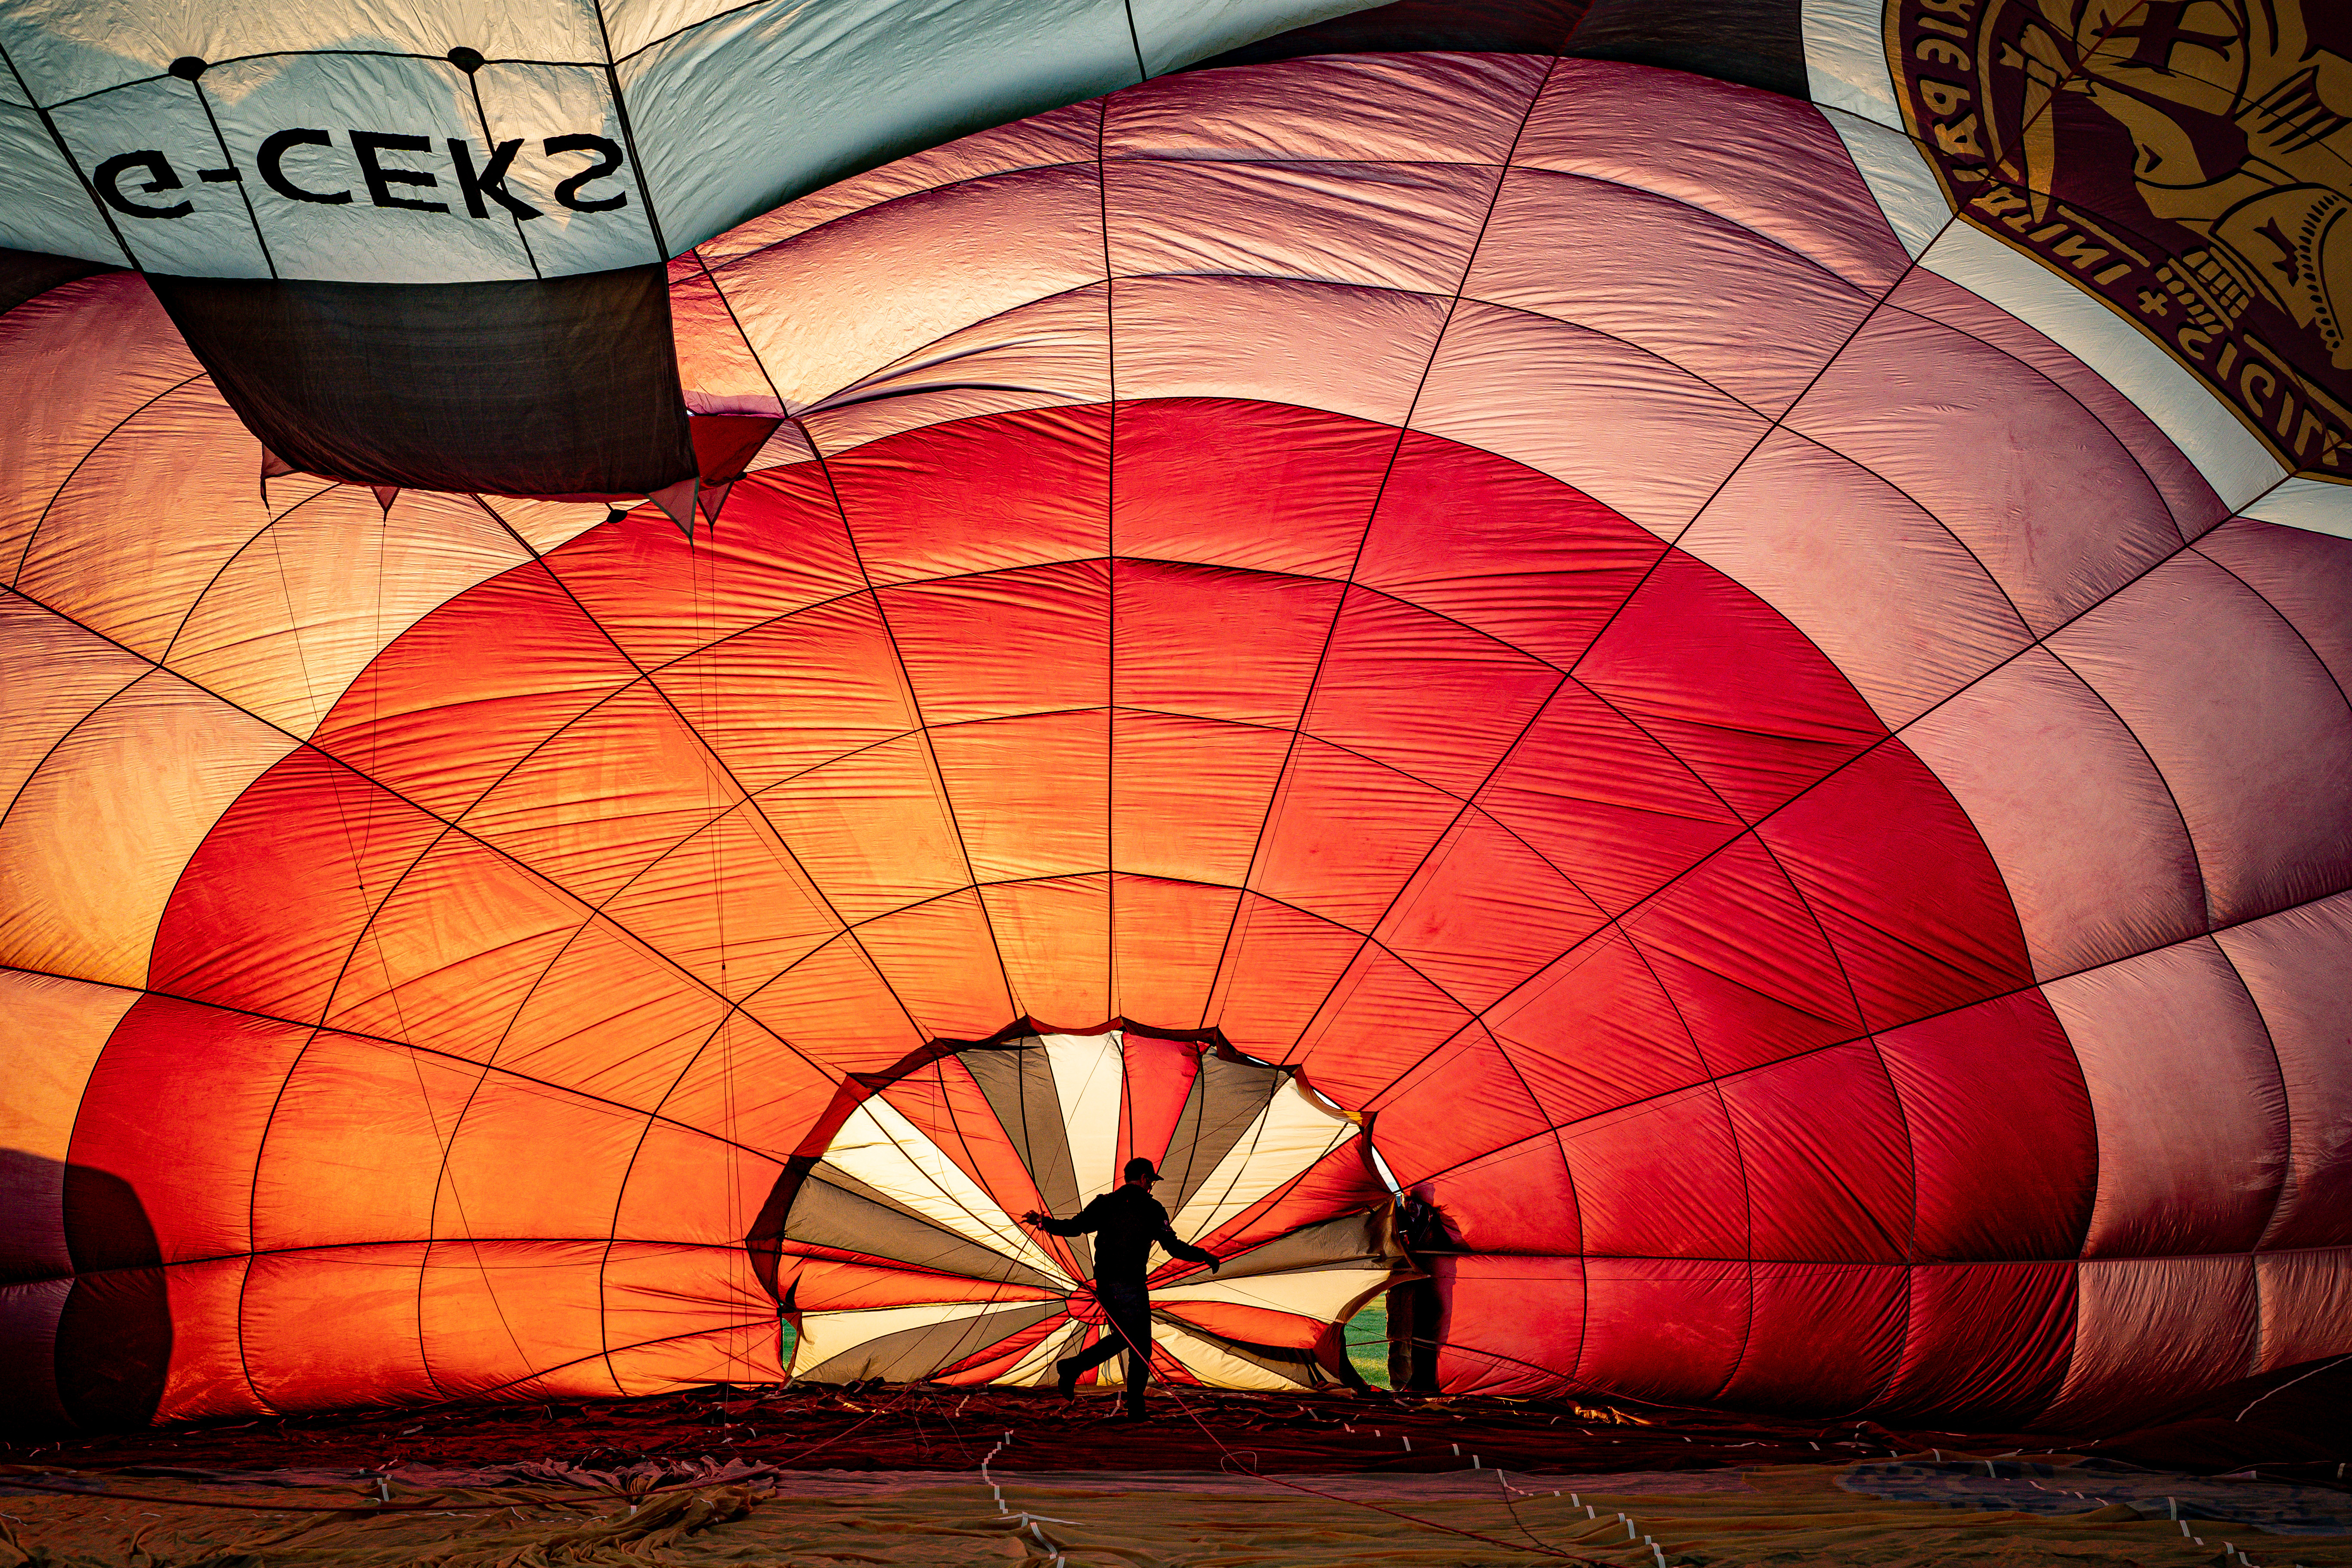 <p>Balloon pilots check the rigging inside a balloon canopy as they prepare for the first mass ascent from Filton, Bristol, during 'Fiesta Fortnight' that will see hundreds of balloons above the skies of Bristol over two weeks, culminating in the Bristol International Balloon Fiesta at Ashton Court Estate. Picture date: Wednesday August 4, 2021.</p>